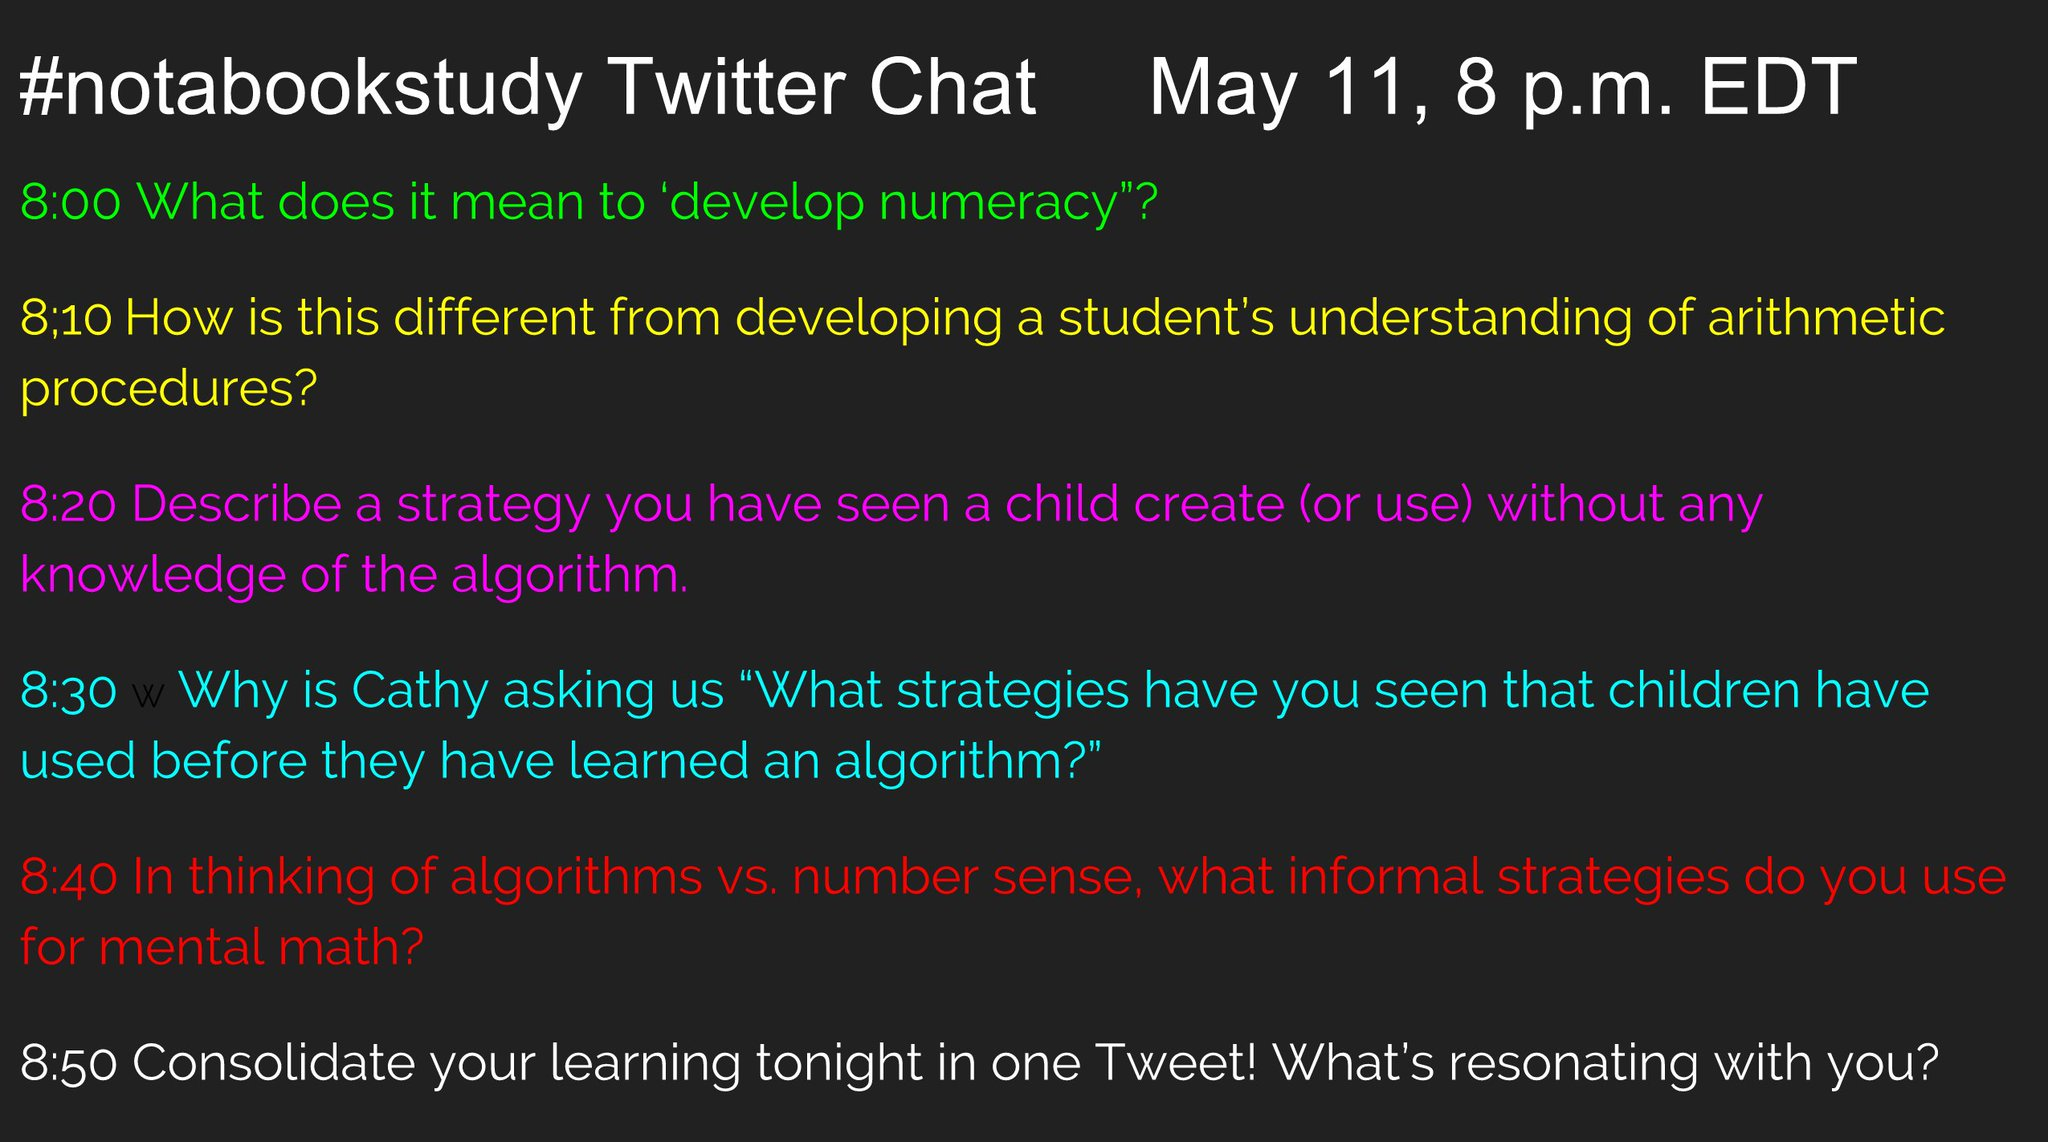 Welcome to the #notabookstudy Twitter chat! Tonight we're looking at Chapter 5  https://t.co/zbTsvxArNG #Onted https://t.co/AgTmLWBR5M